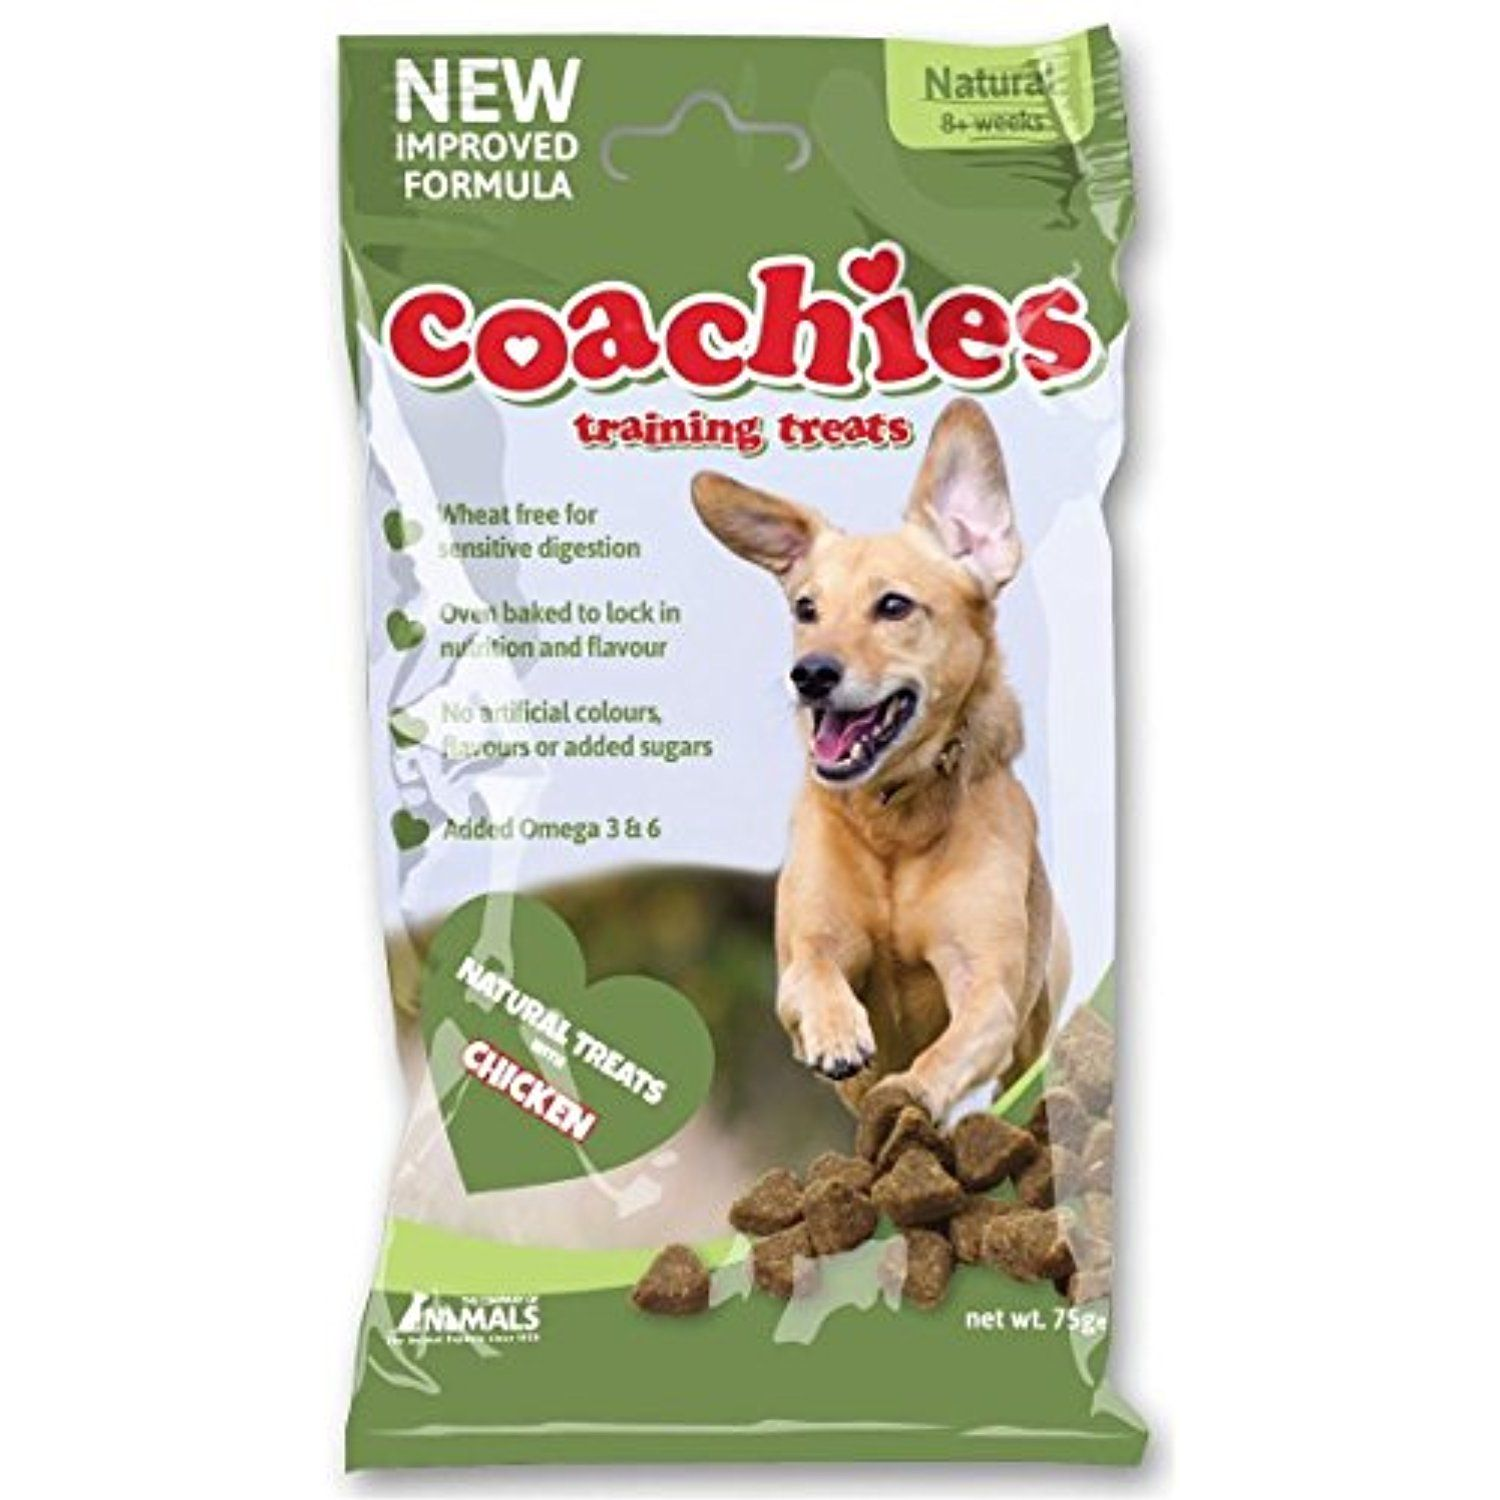 Coachies Natural Dog Treats 75g You could find more